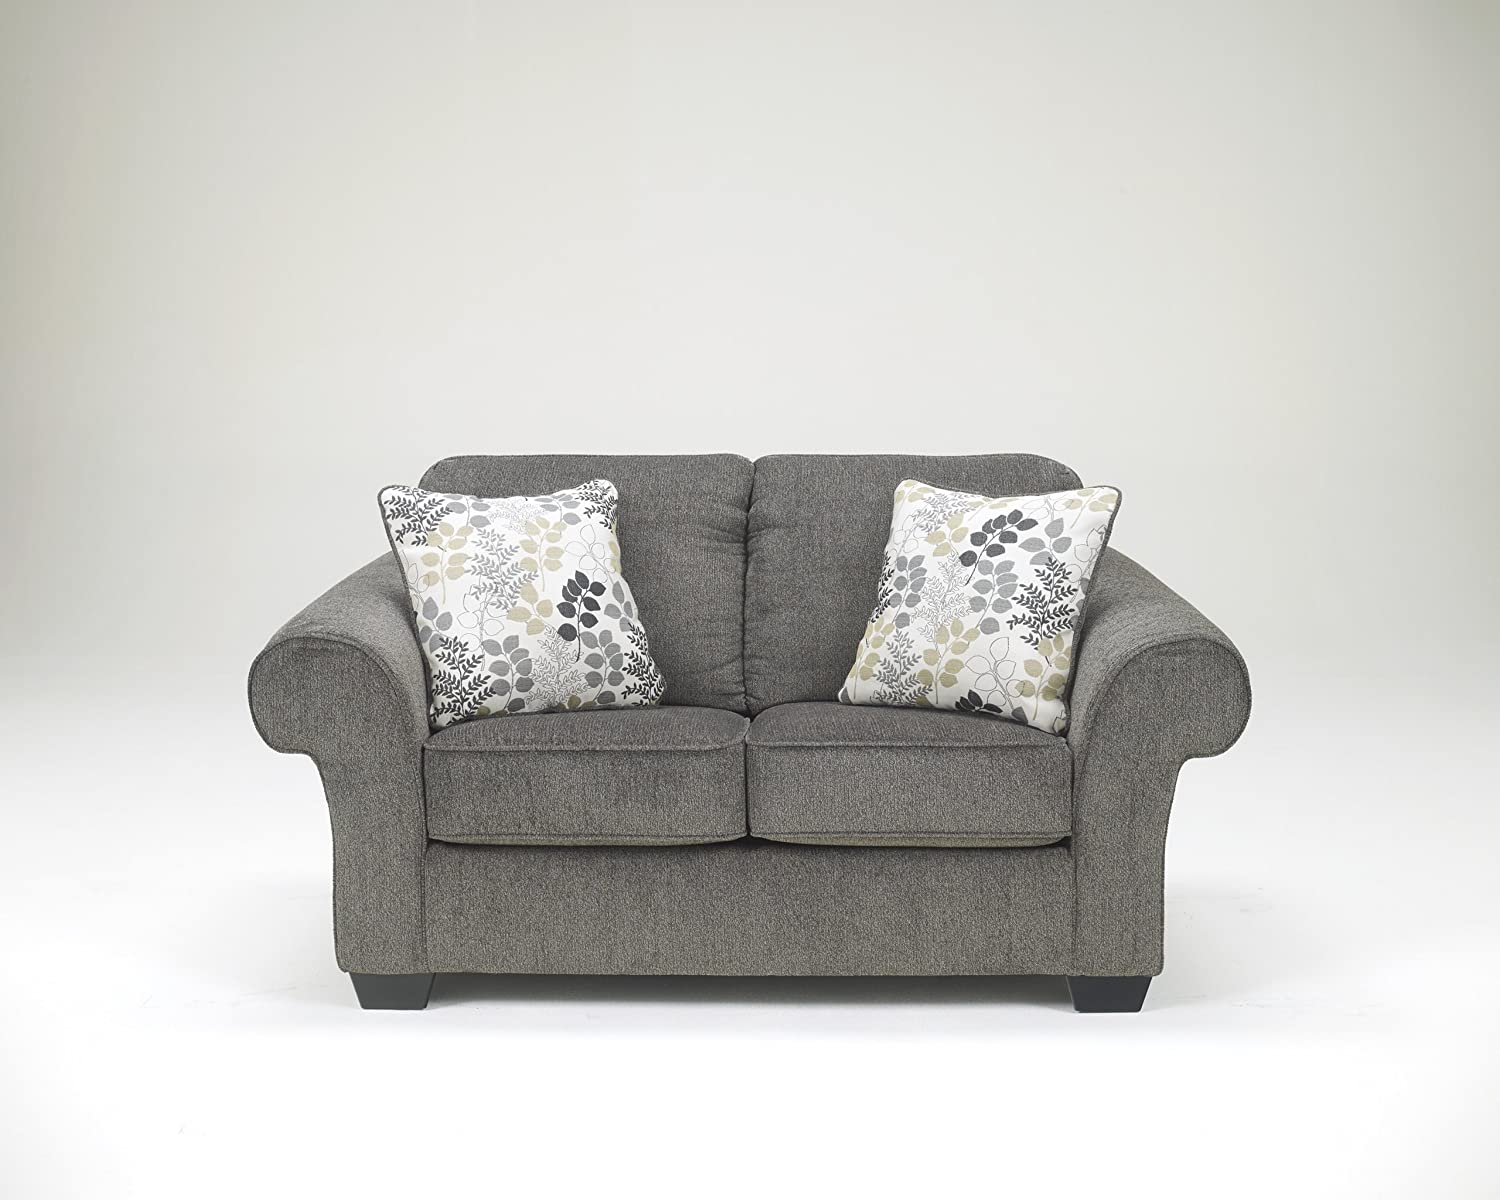 Makonnen Charcoal Color Soft Fabric Upholstery Contemporary Design Loveseat